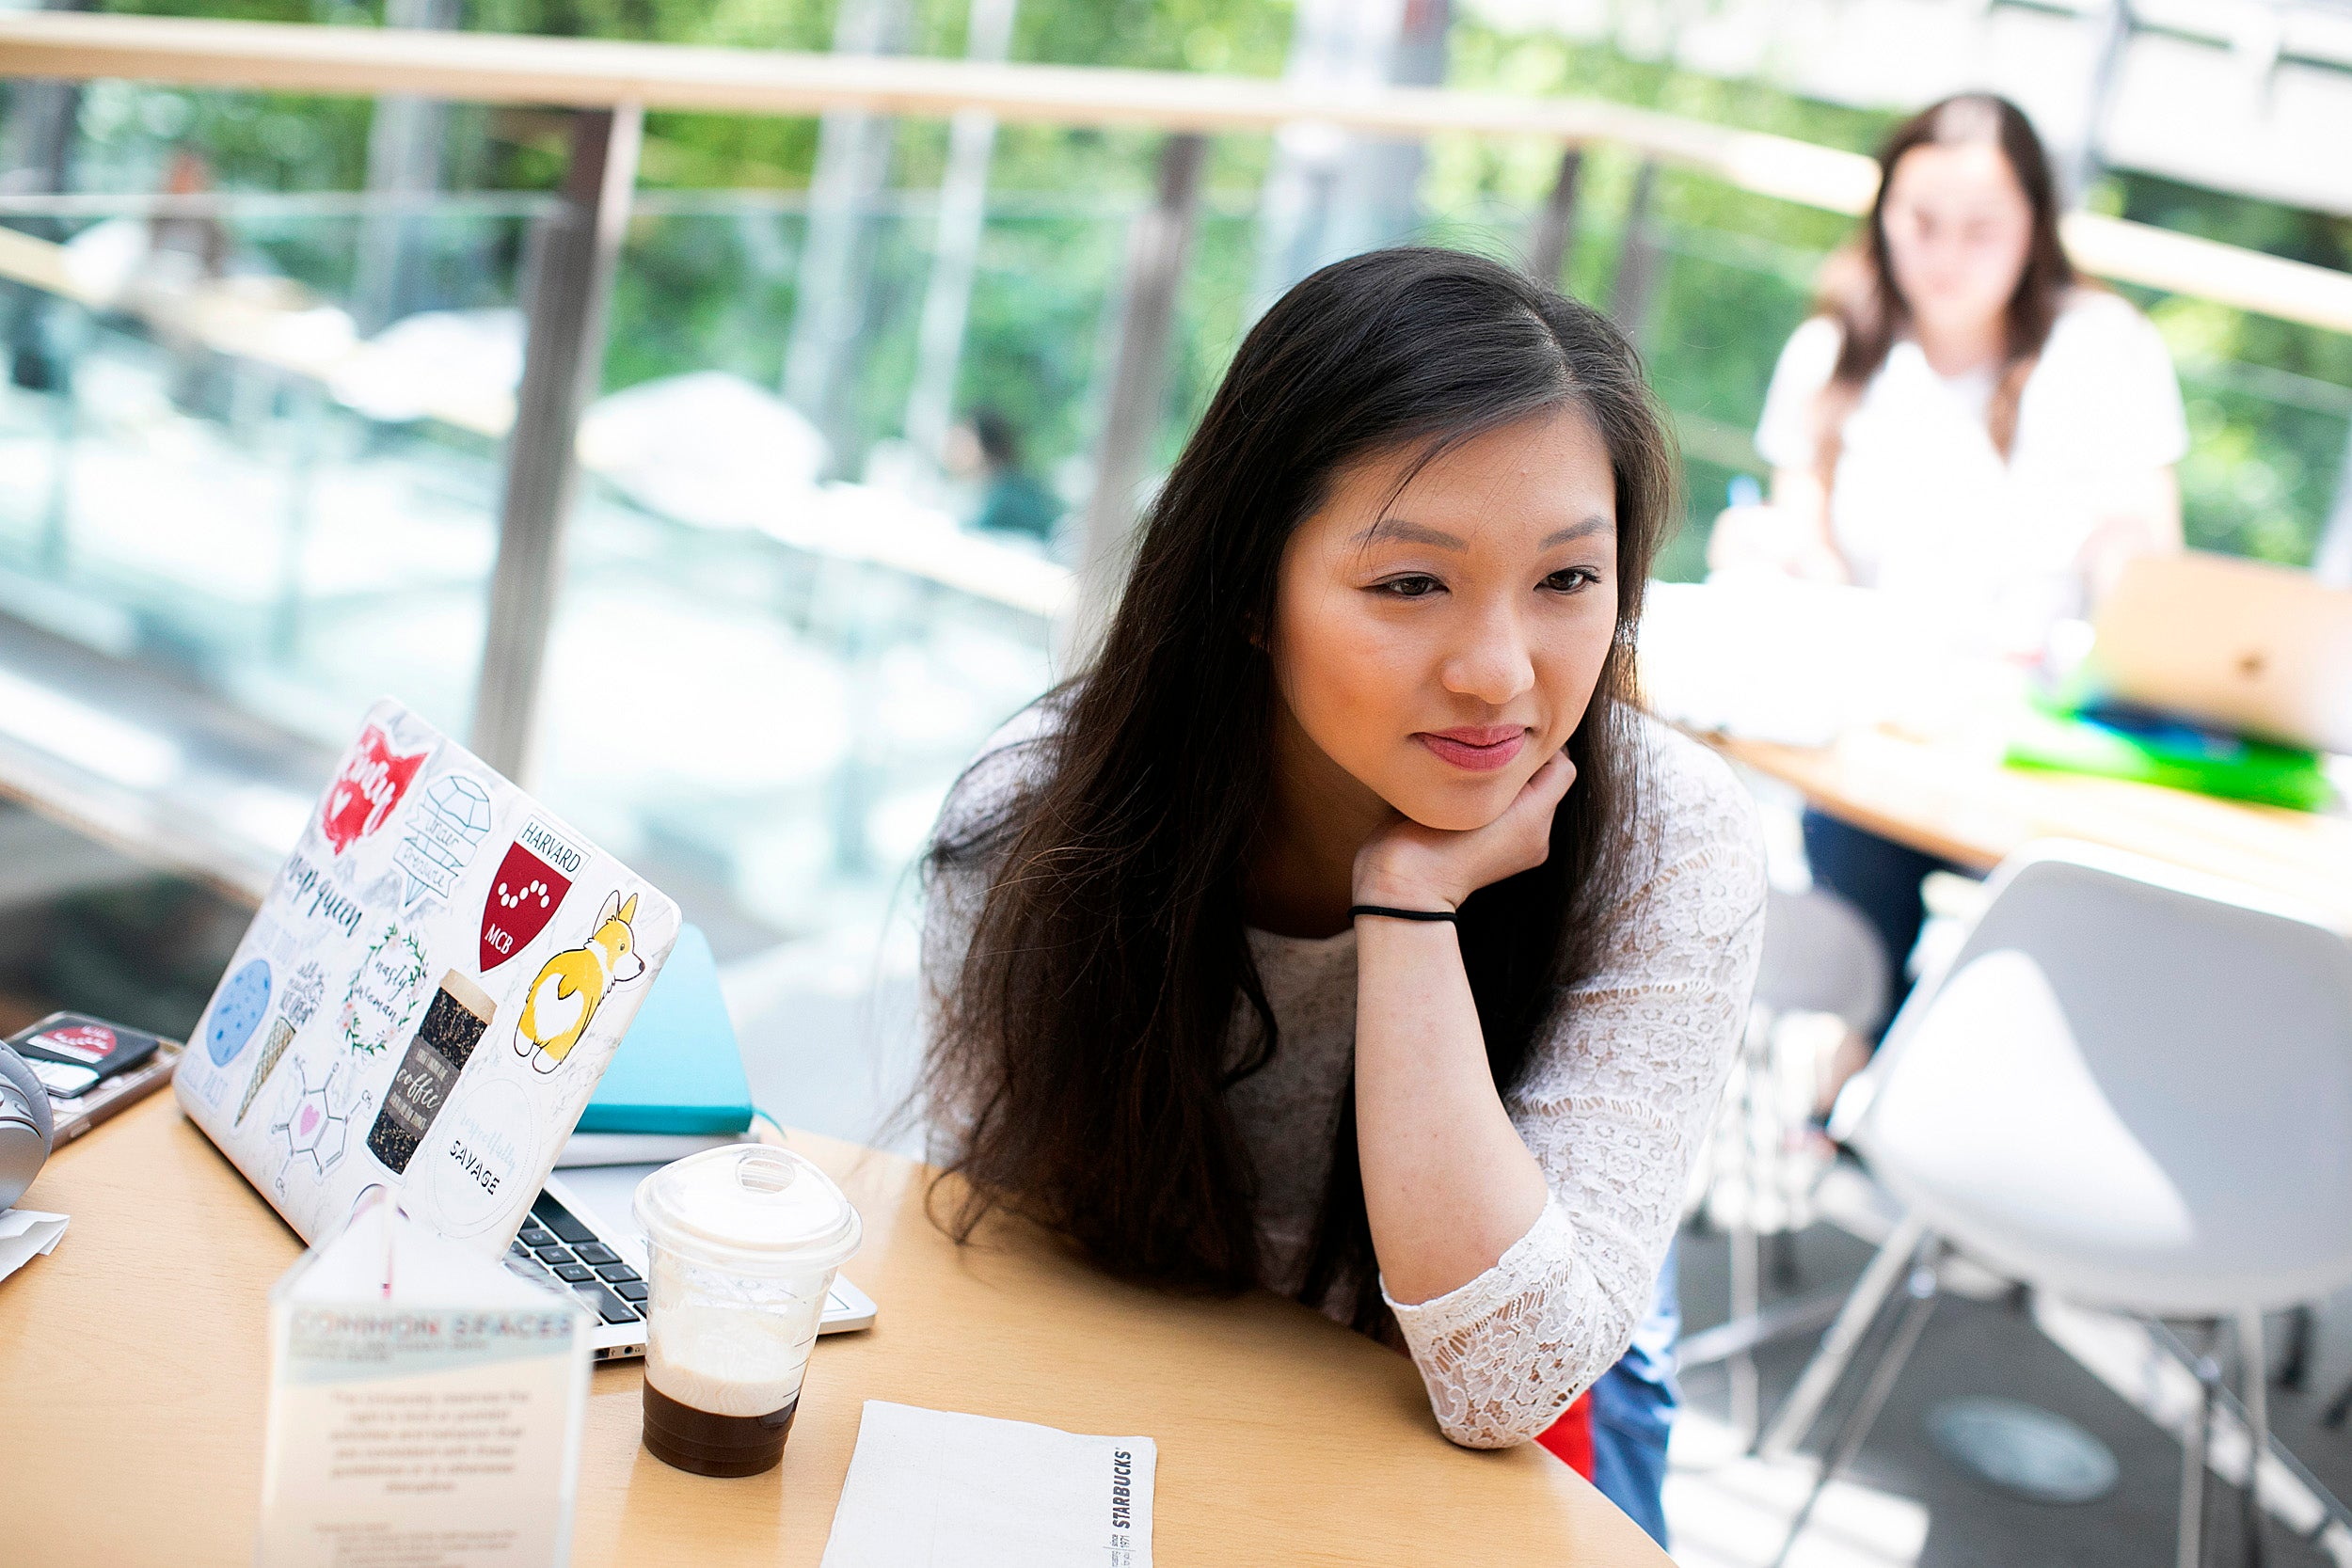 Allison Yan looks pensive next to her sticker-covered laptop